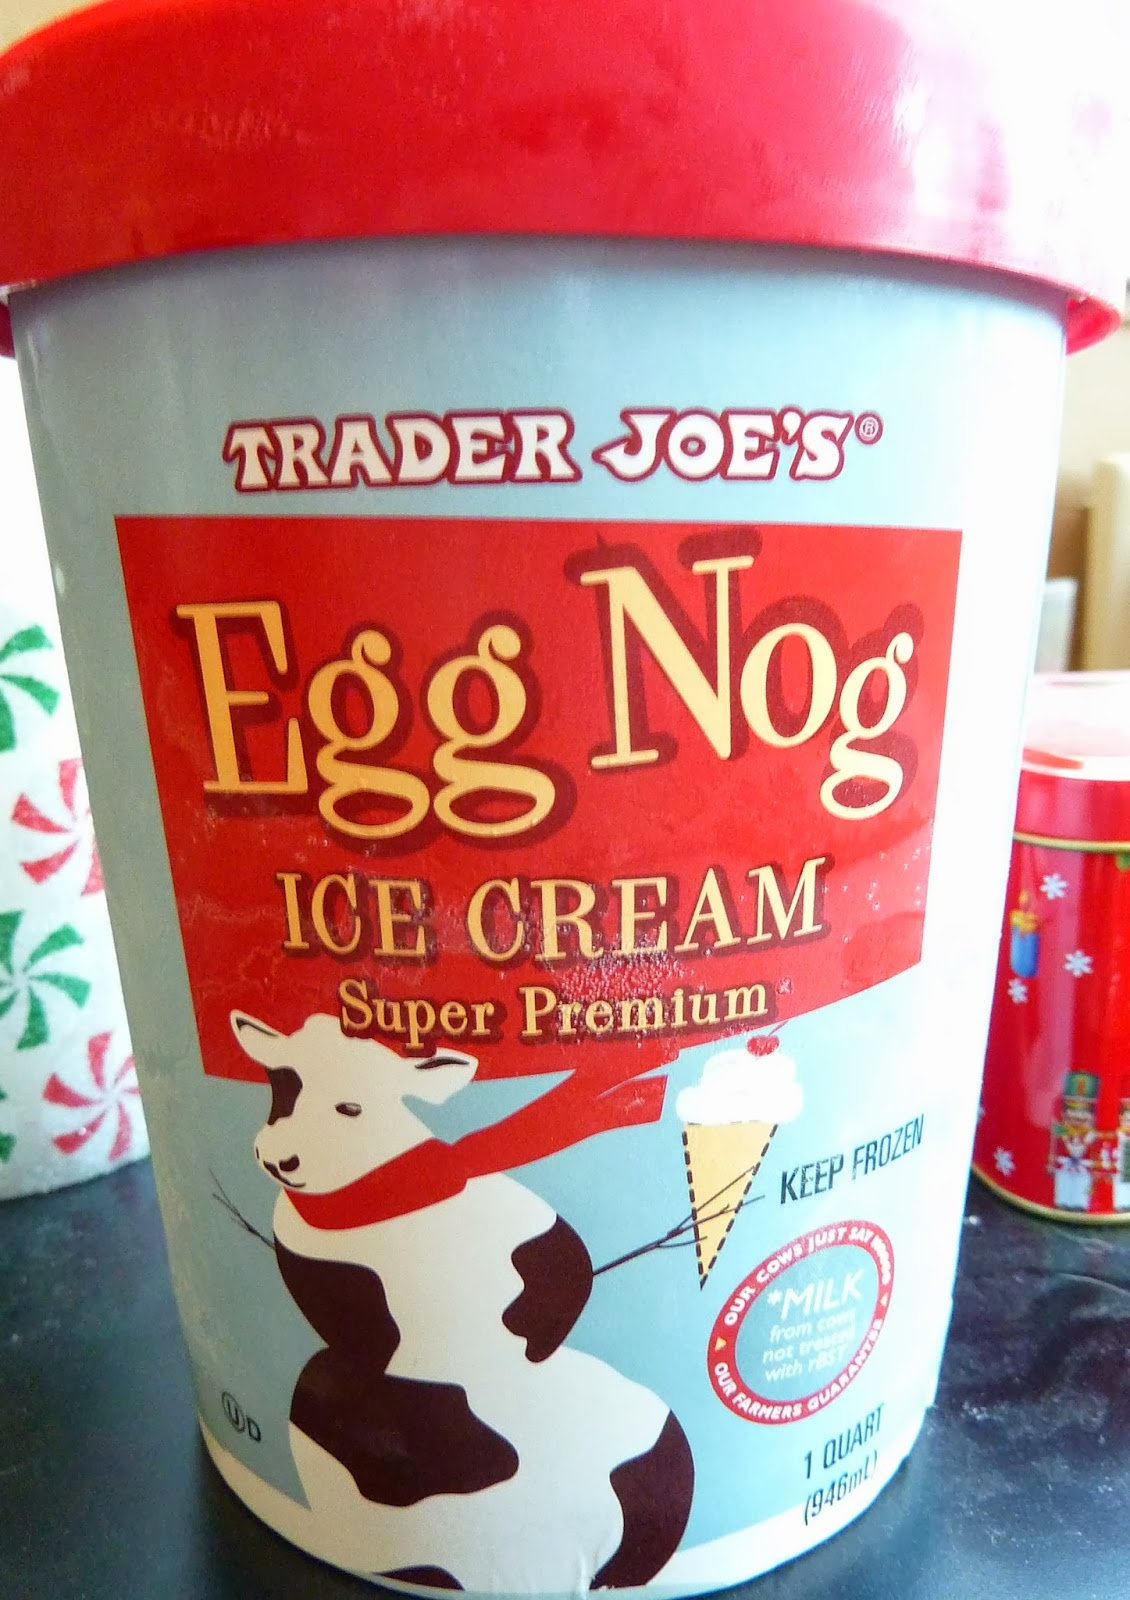 What's Good at Trader Joe's?: Trader Joe's Egg Nog Ice Cream